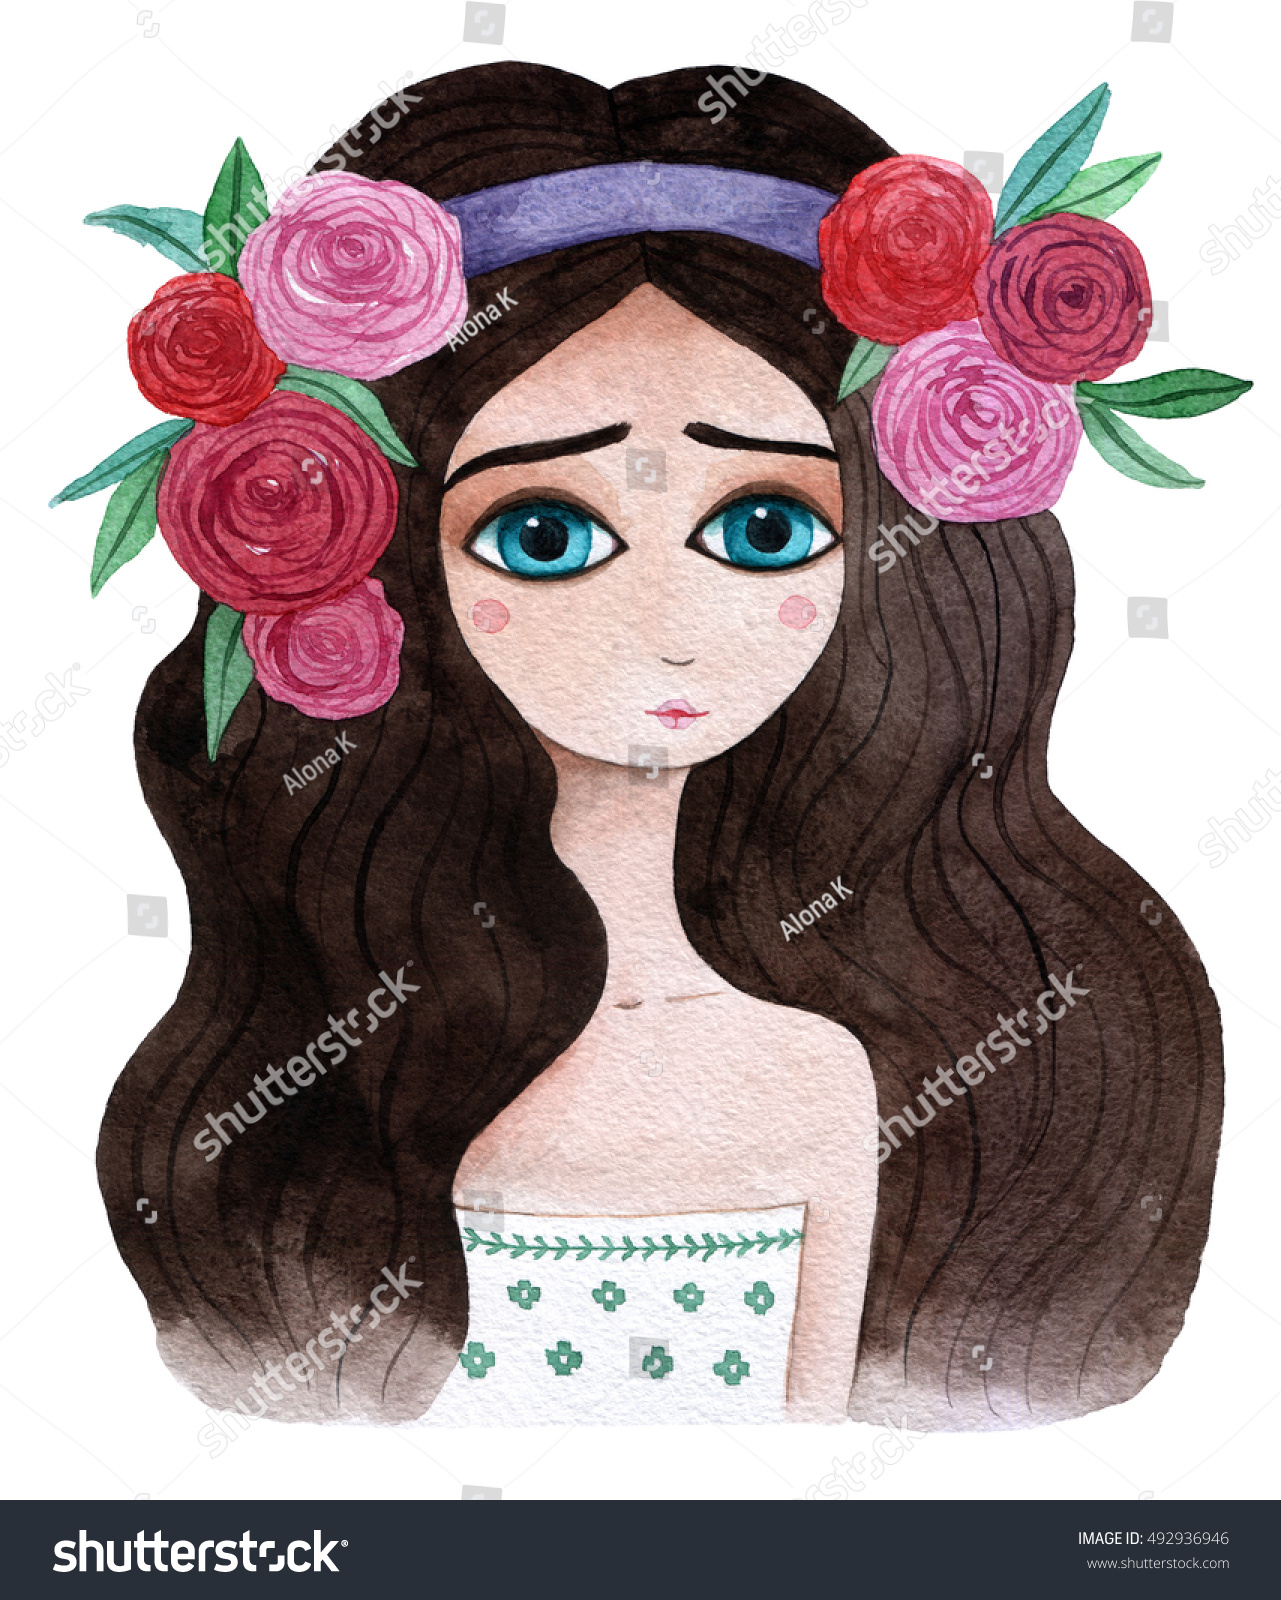 Girls Portrait Watercolor Illustration Hand Drawn 492936946